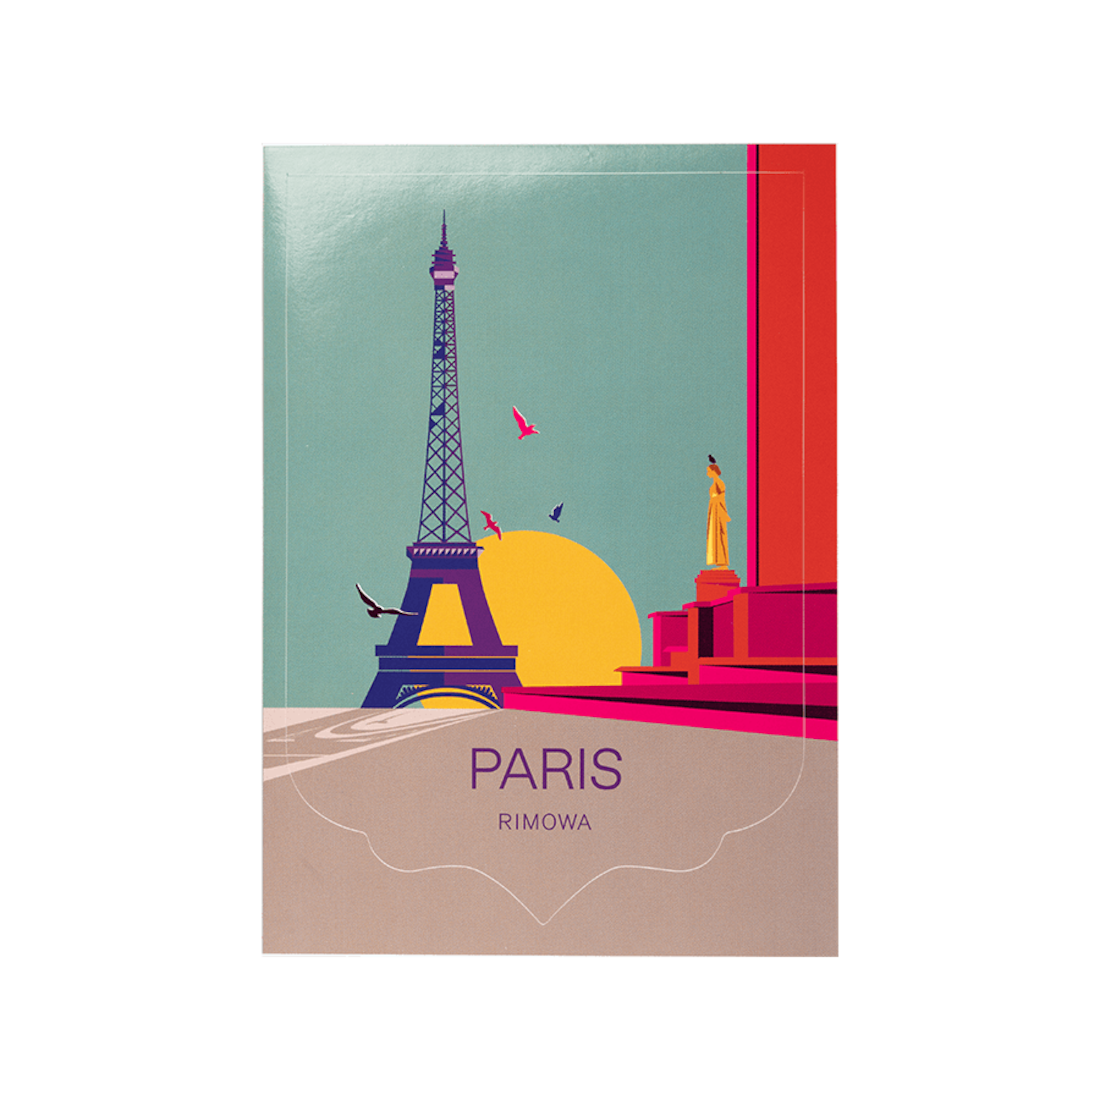 Paris - Stickers